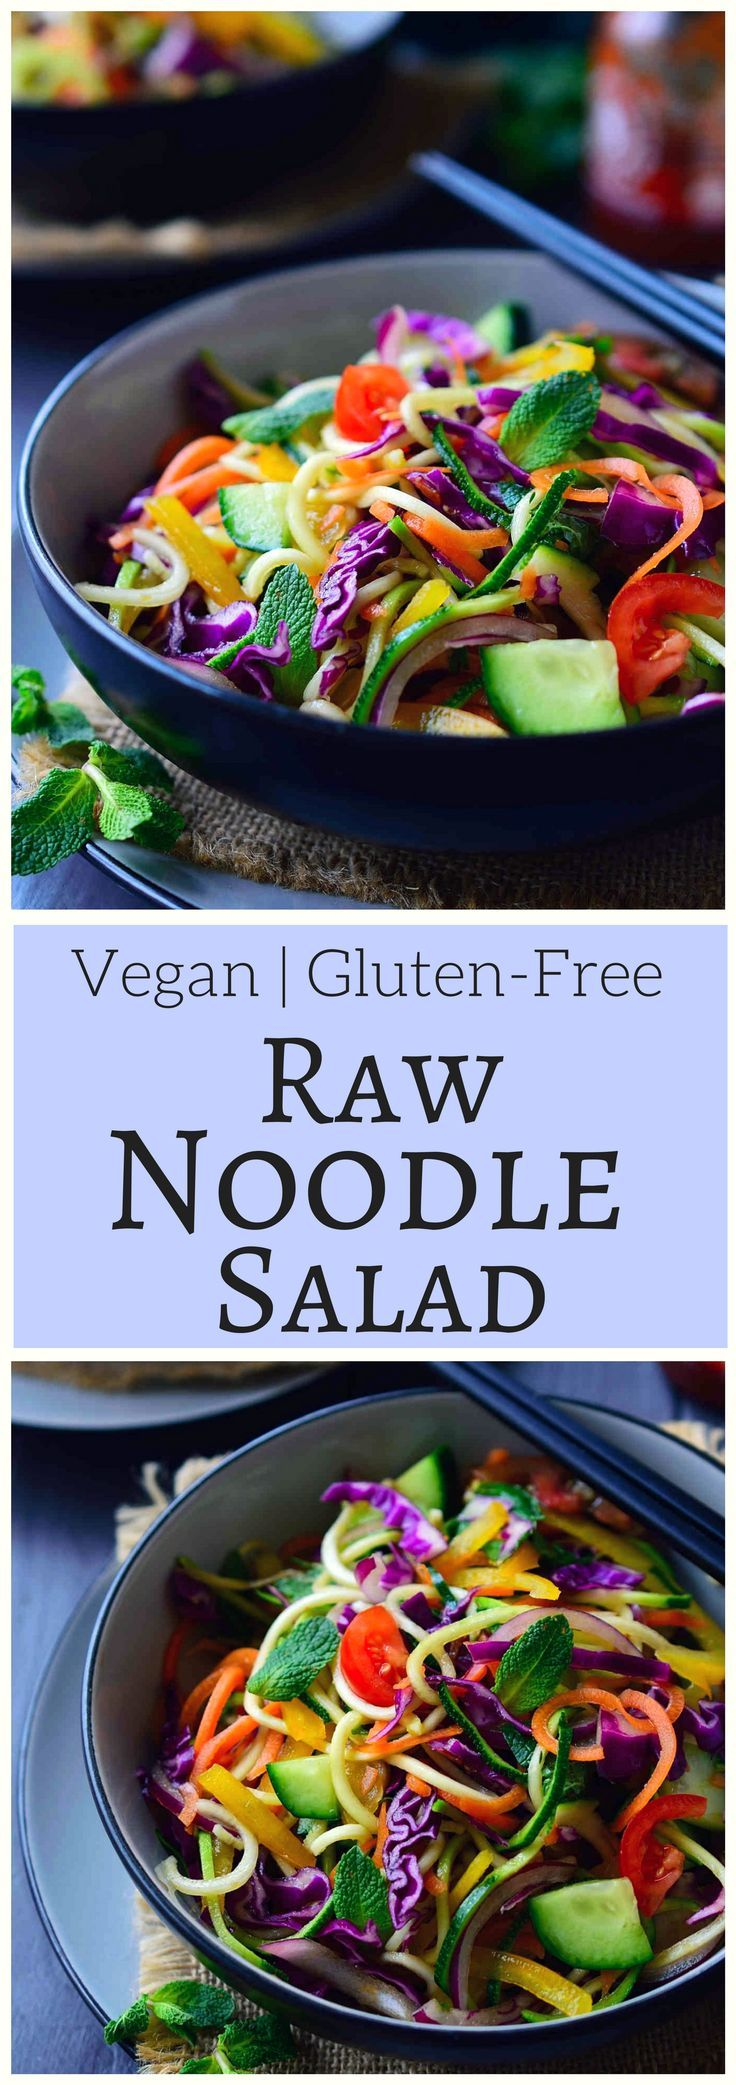 This raw vegan noodles salad recipe is super quick and easy to put together and is great served as a main or side dish. All you need is a selection of colourful vegetables, some pantry staples and a s